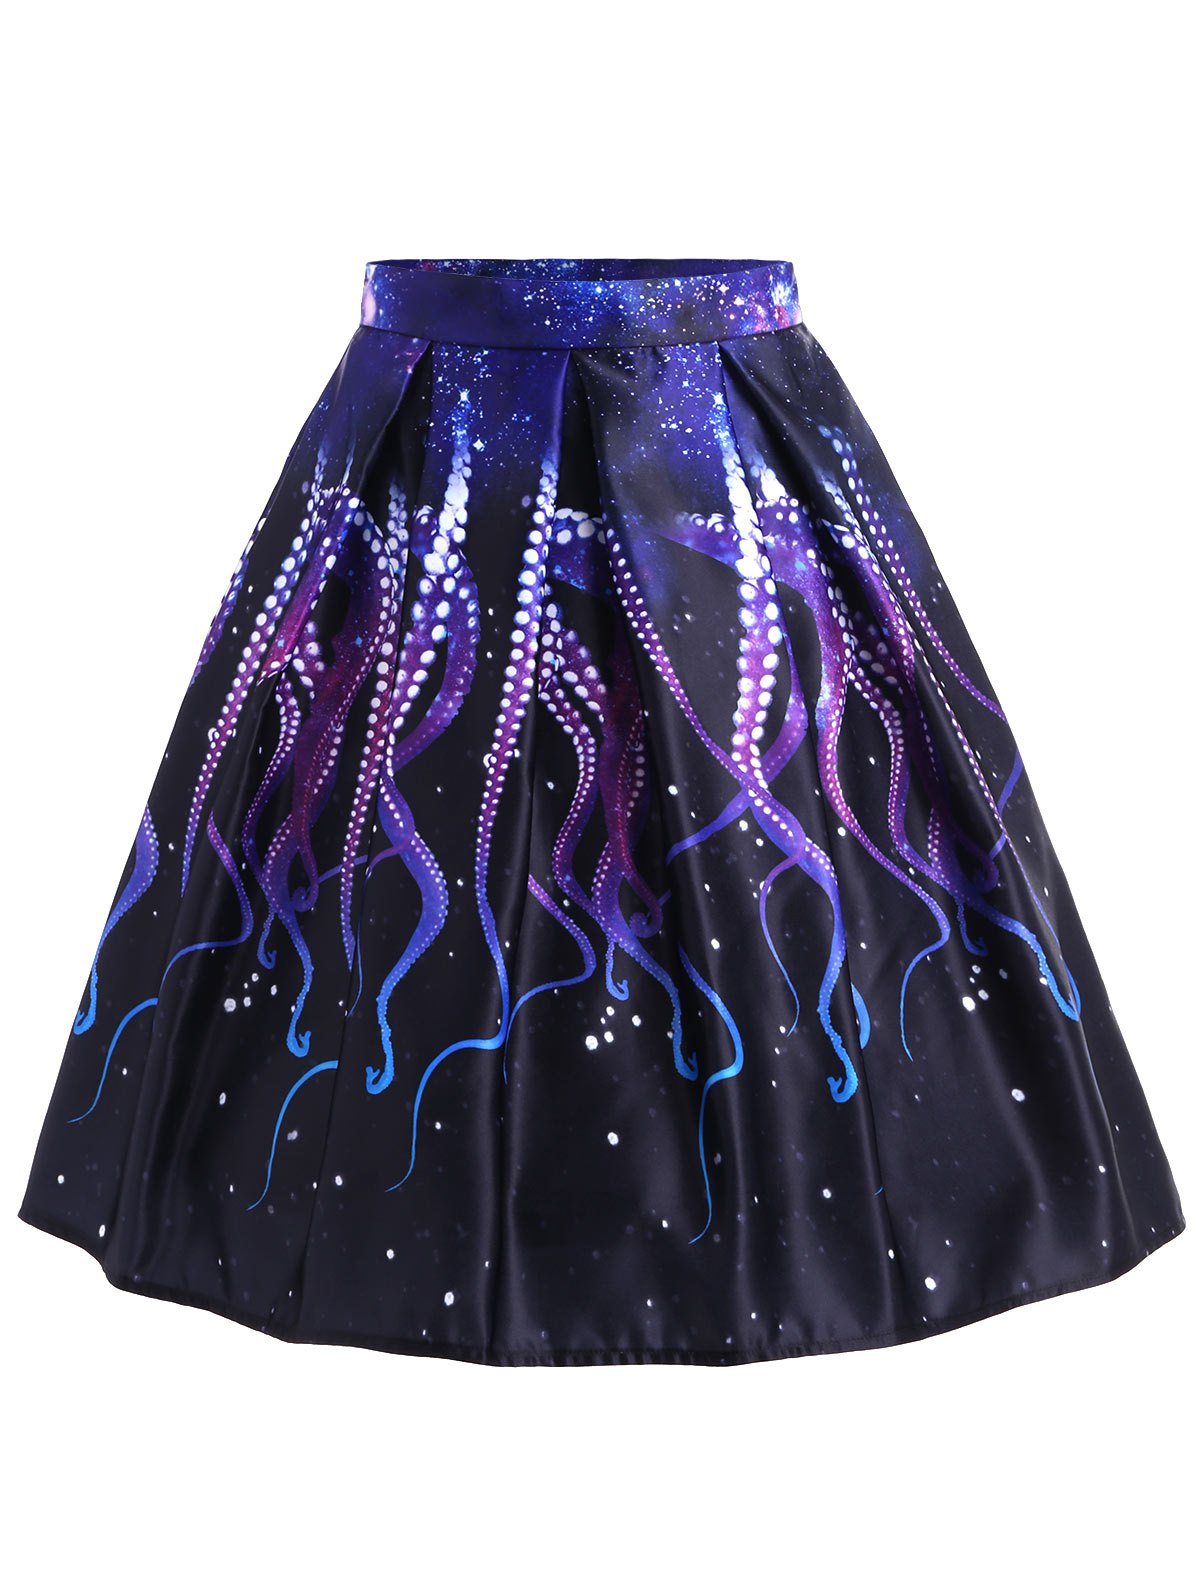 Octopus Claw A-line Skirt - BLACK S